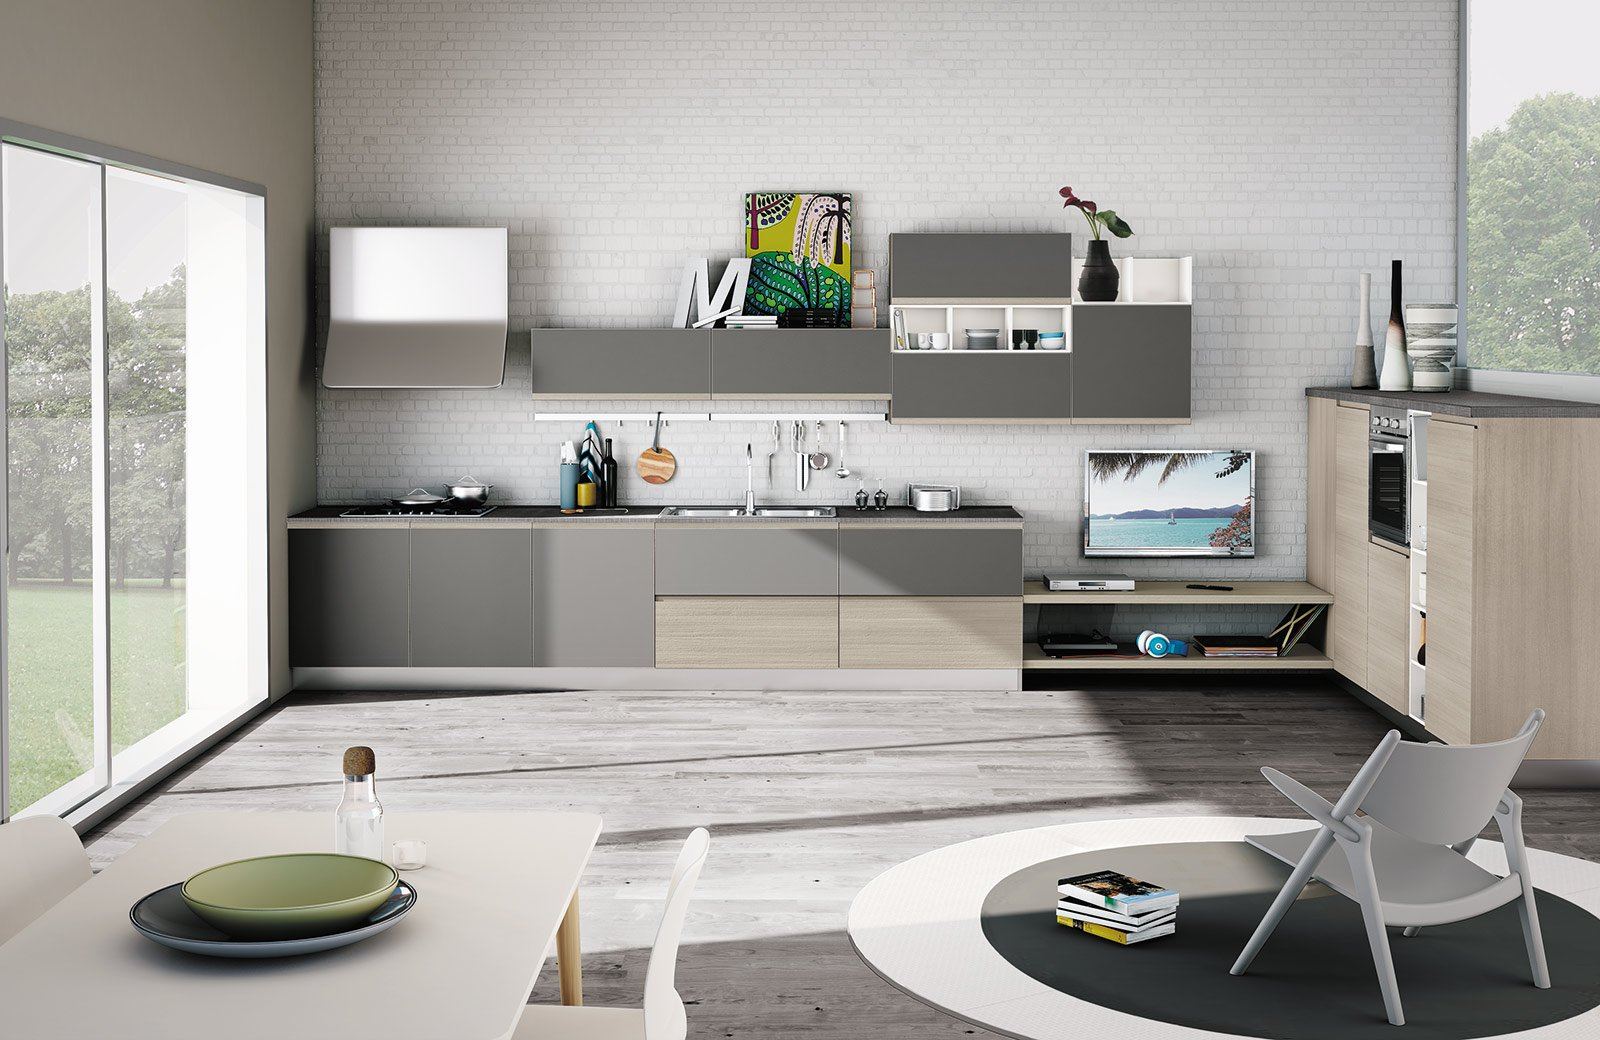 Cucine colorate come un quadro contemporaneo cose di casa - Top cucina ardesia ...